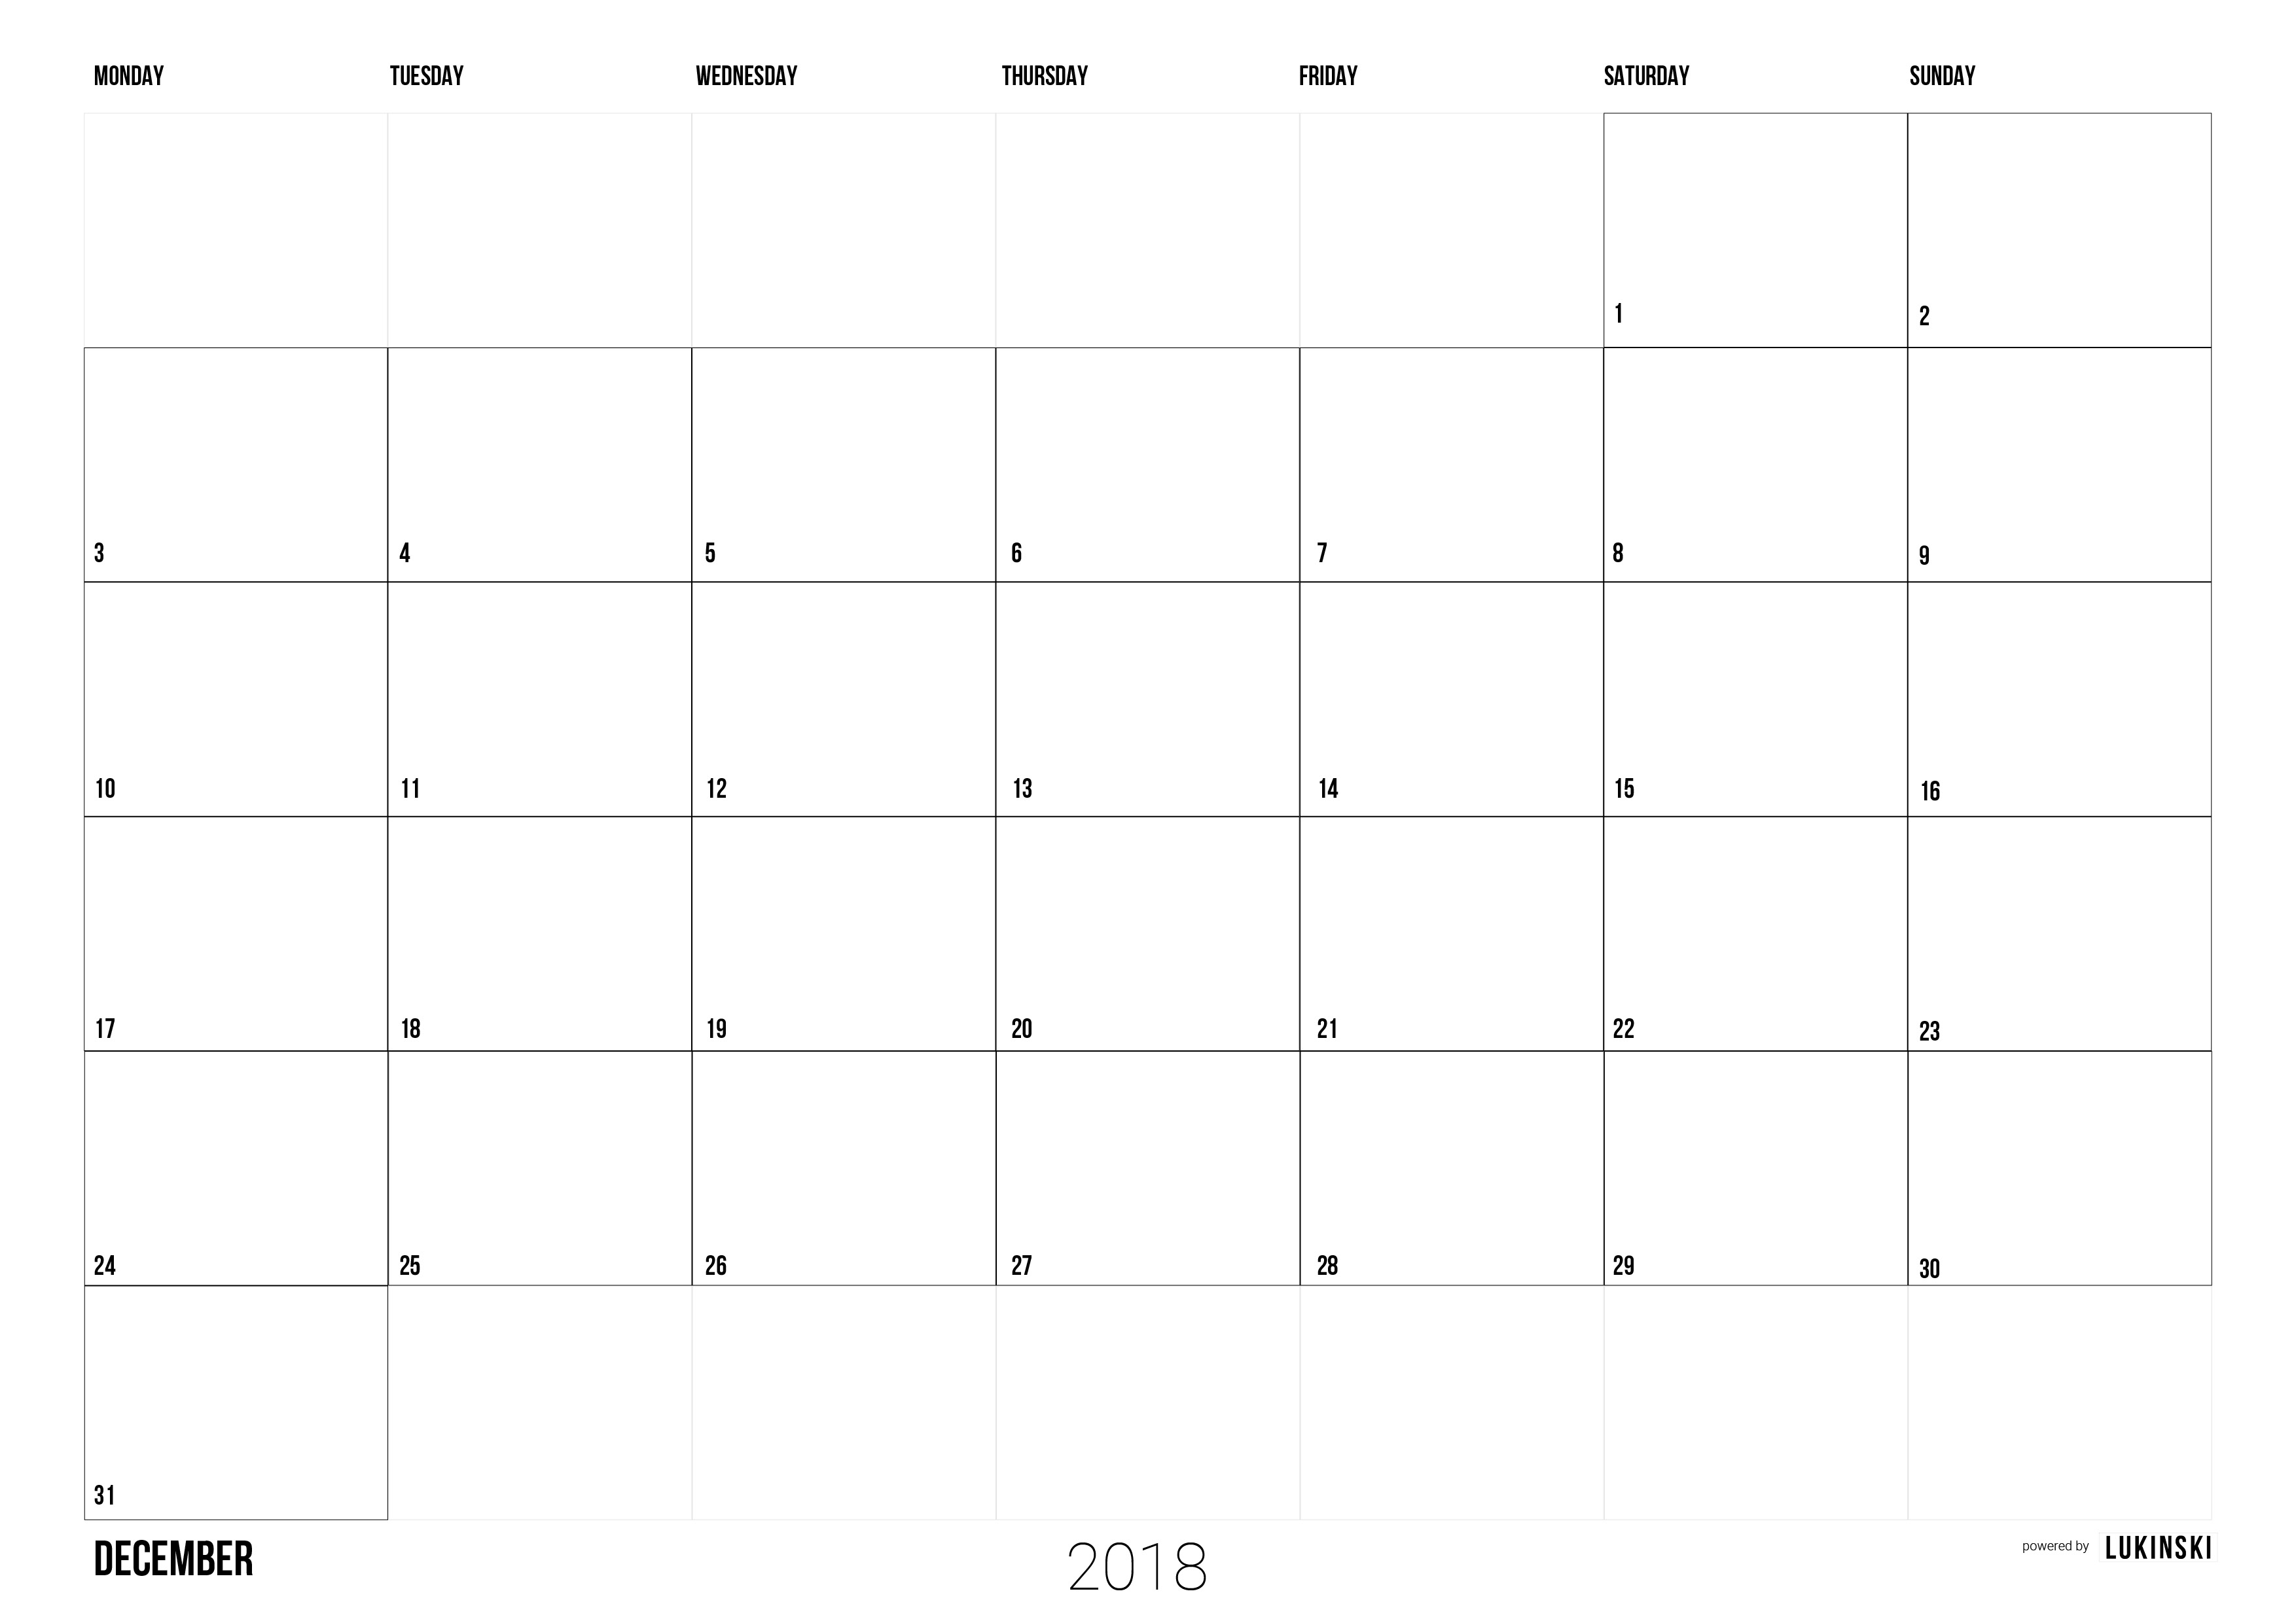 Calendar May 2018 Tumblr : Calendar to print pdf monthly calendar free for team and